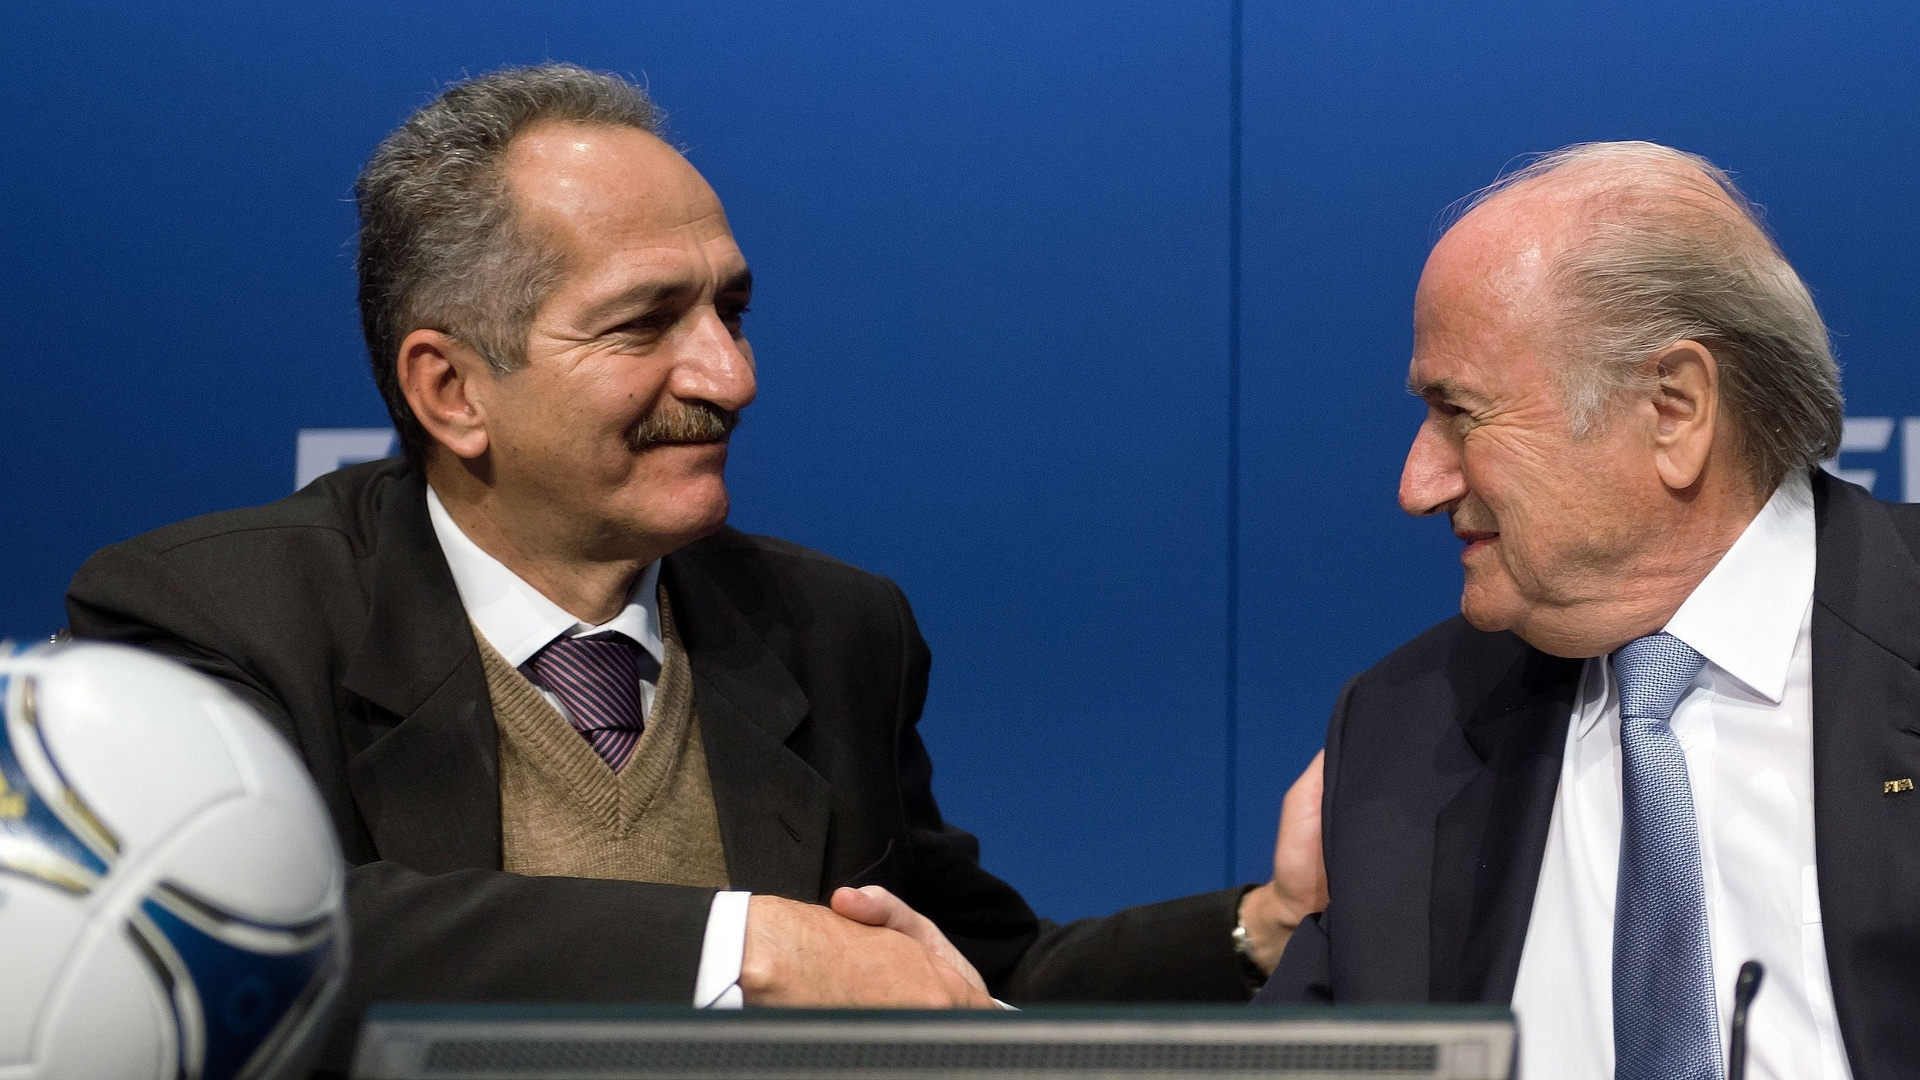 Aldo Rebelo cumprimenta presidente da Fifa Joseph Blatter em reunio realizada nesta tera-feira, em Zurique